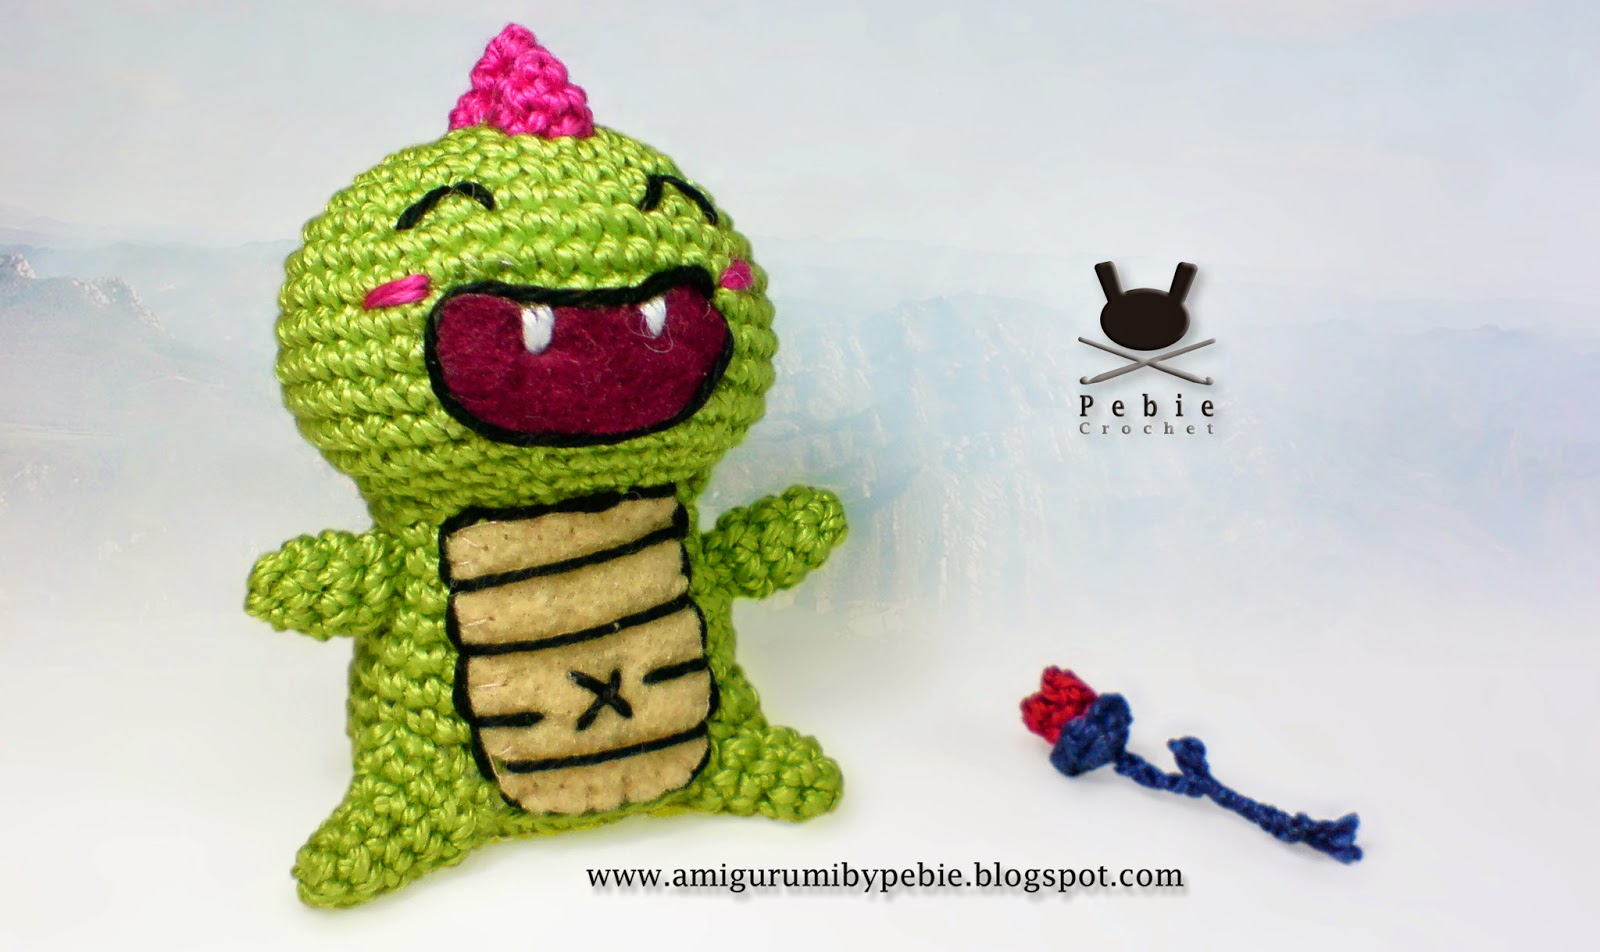 Dragon Azul Amigurumi : Funny Amigurumi by Pebie: New free pattern: Joanet, the dragon